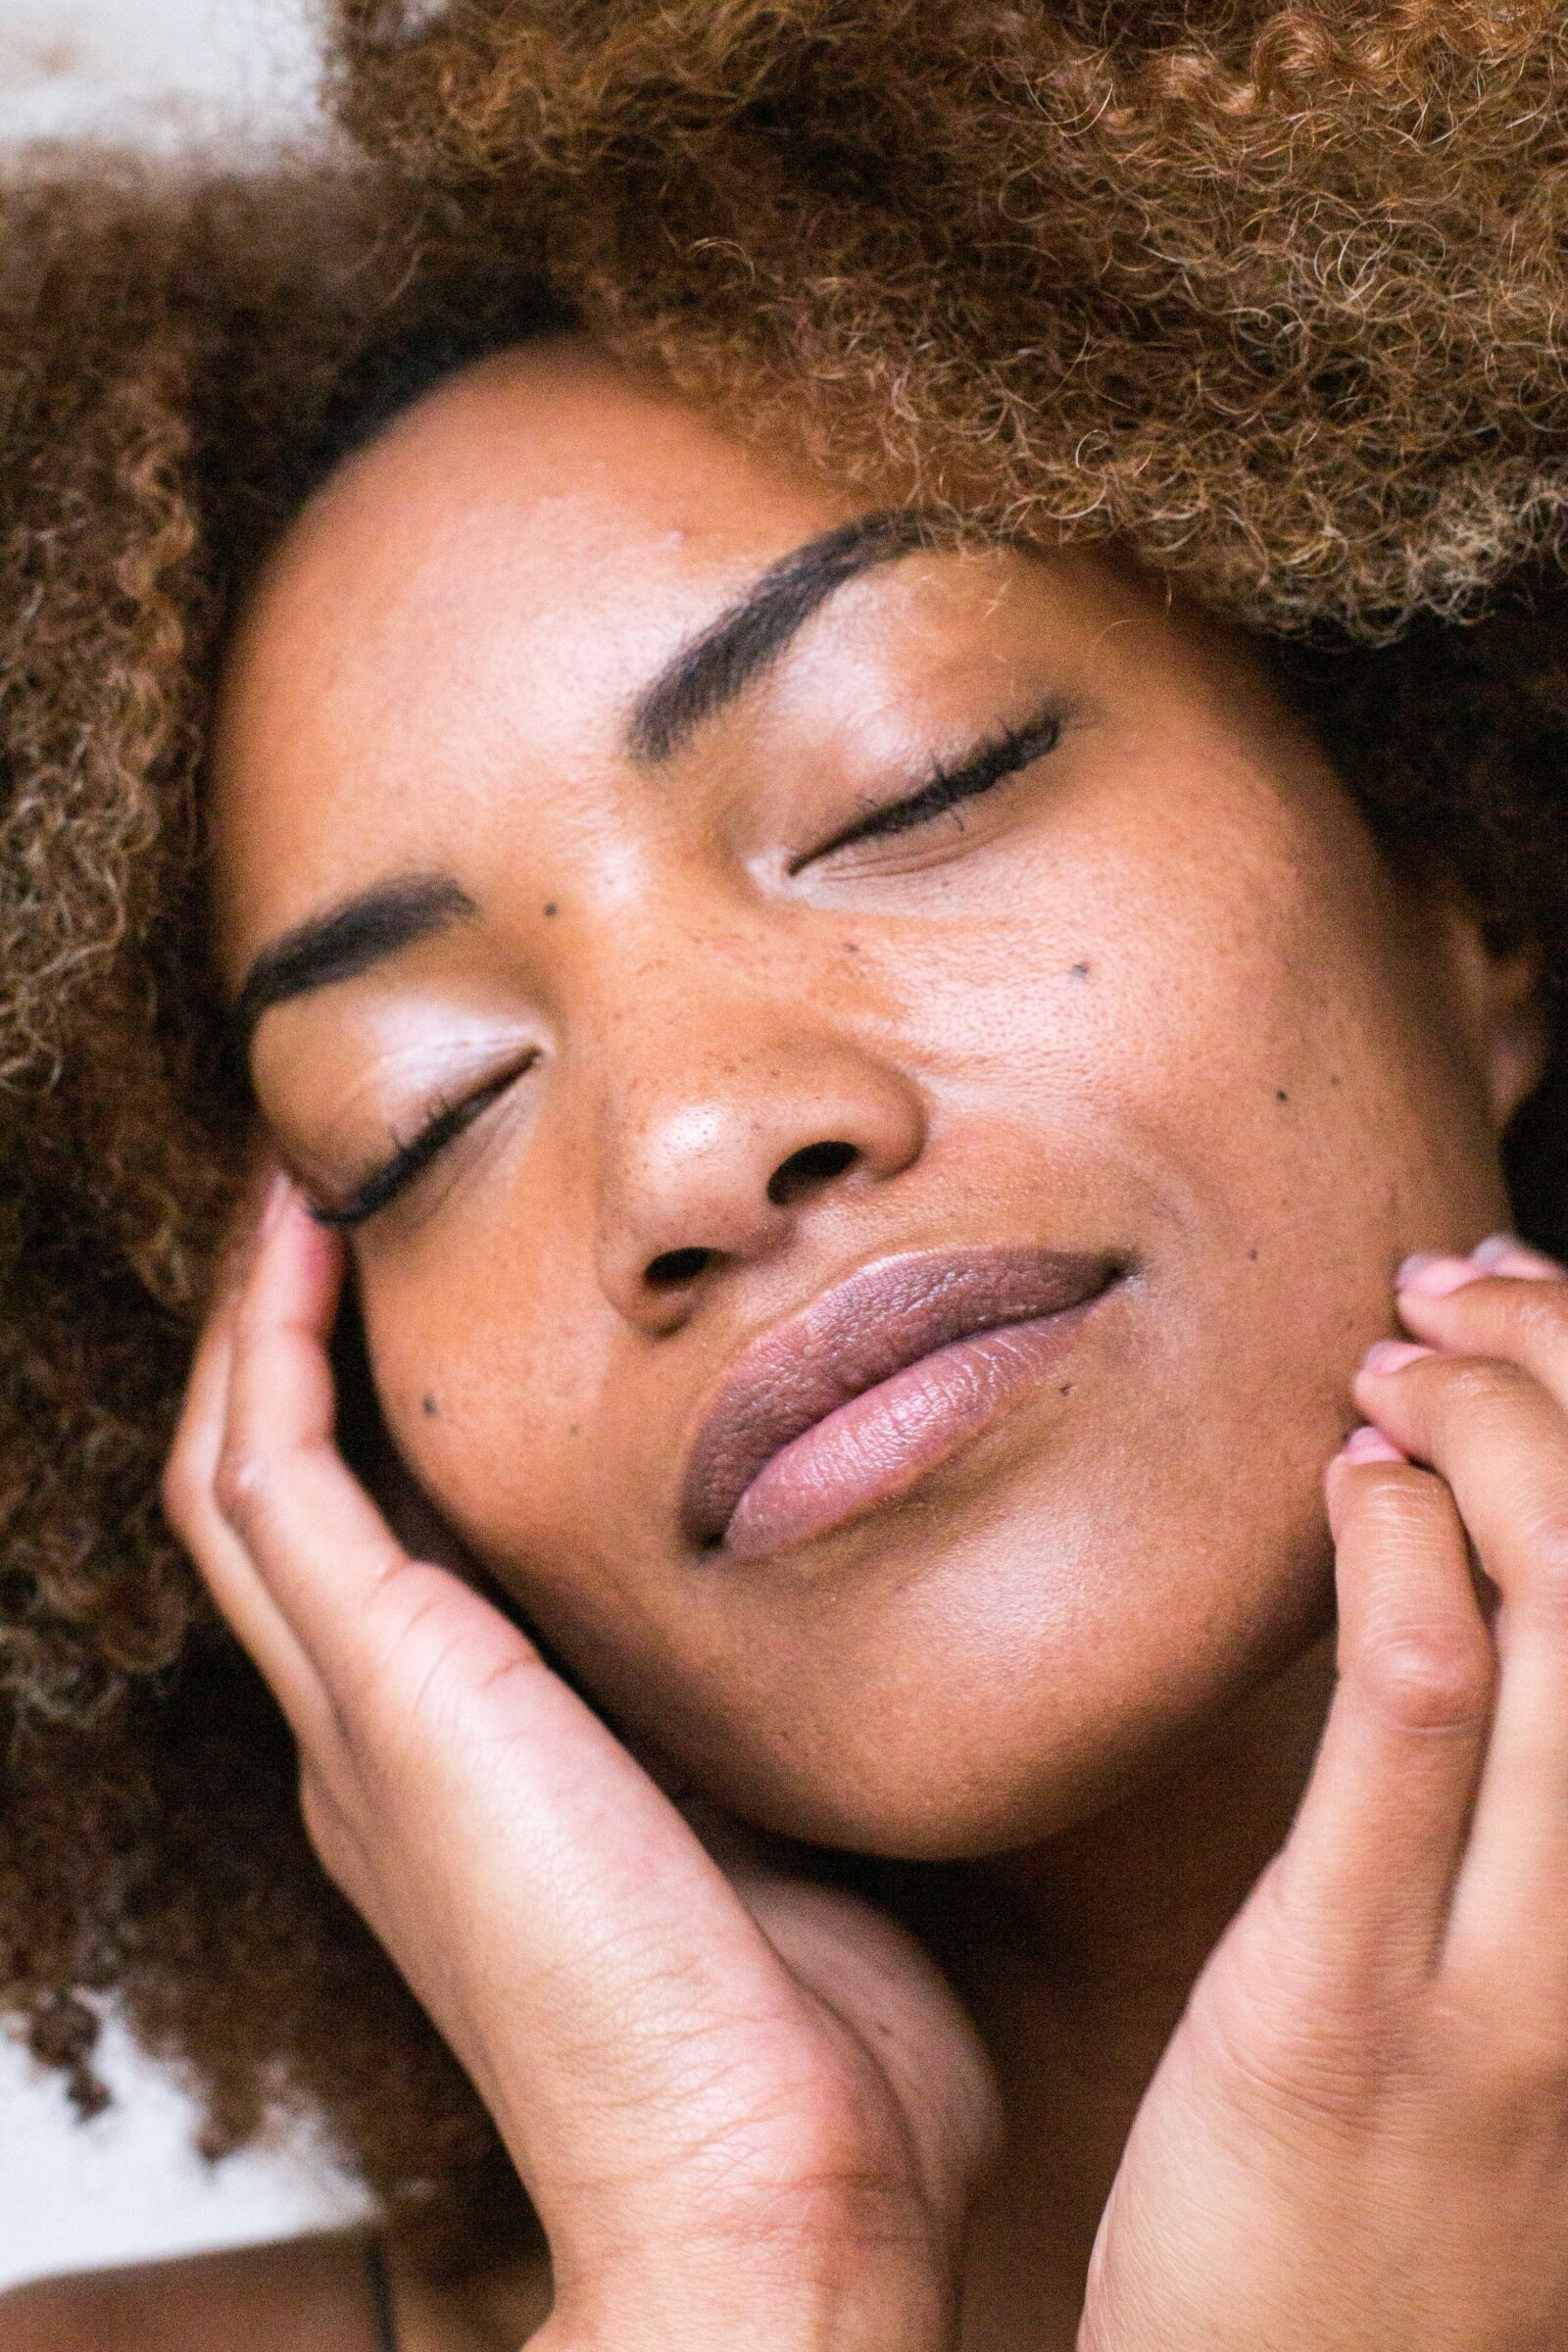 Black woman with eyes closed touching her face